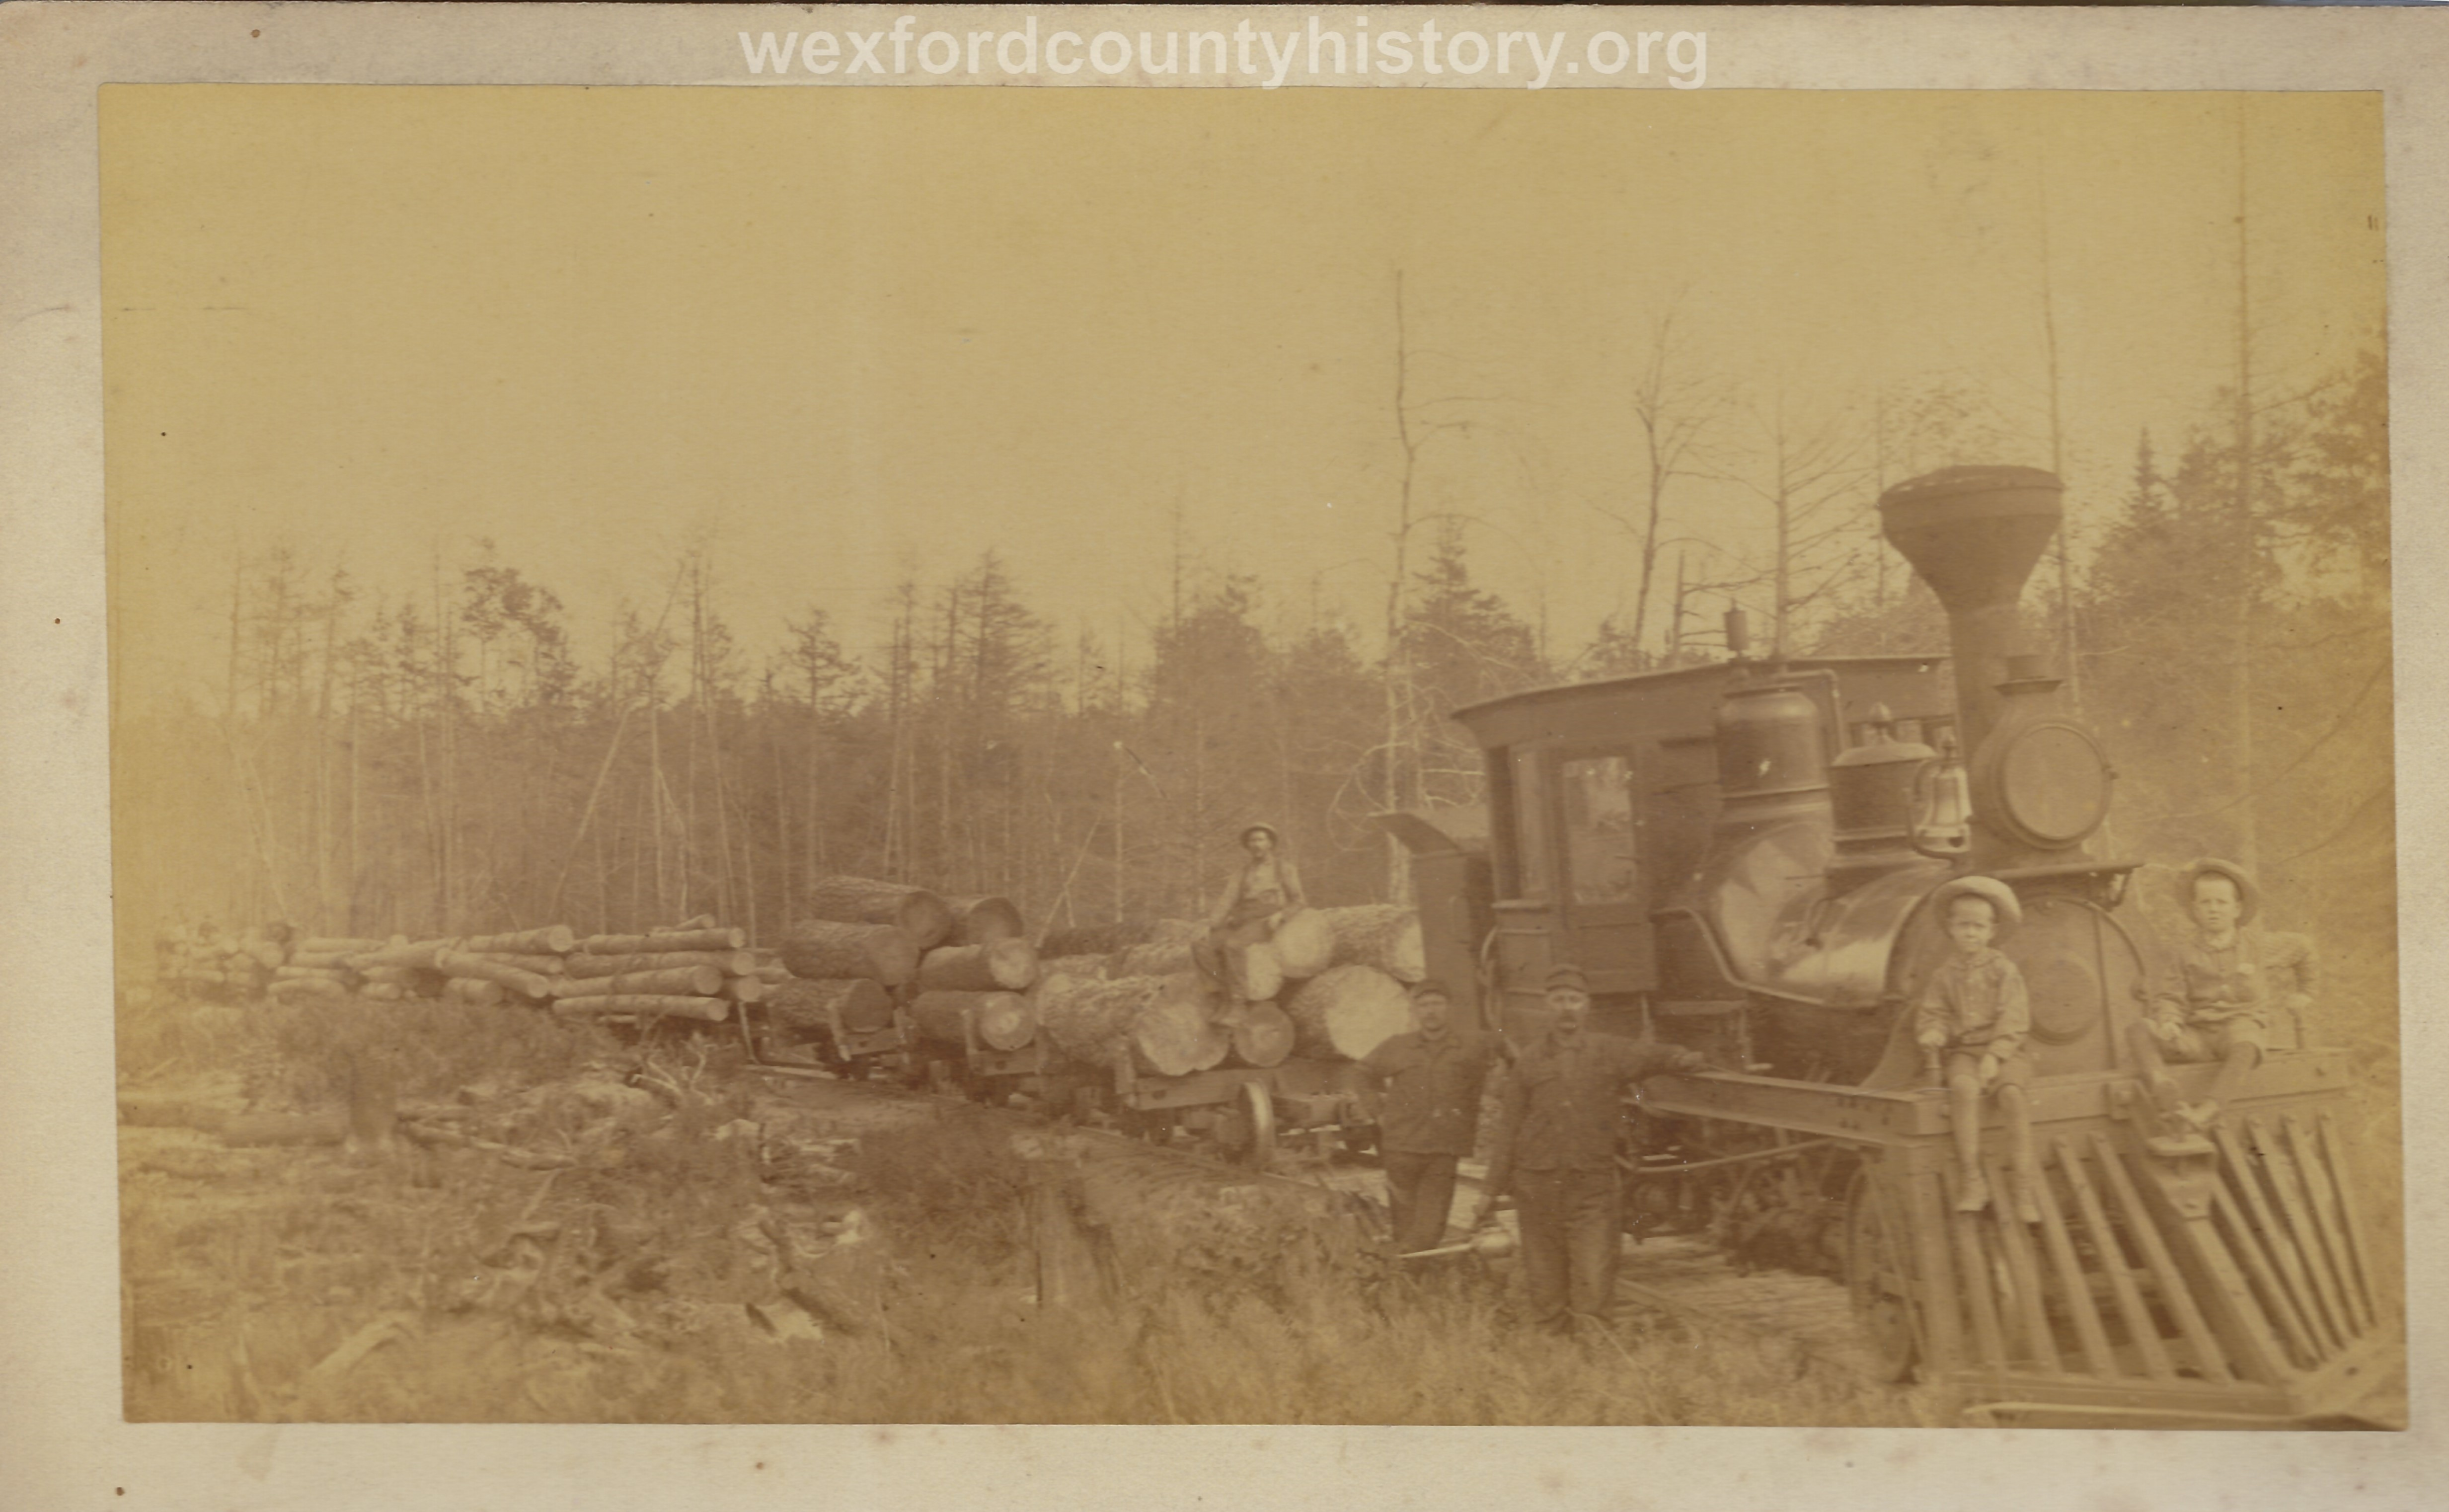 Cadillac-Lumber-Engine-Pulling-Nine-Cars-Of-Logs-With-Children-Posed-On-Cow-Catcher